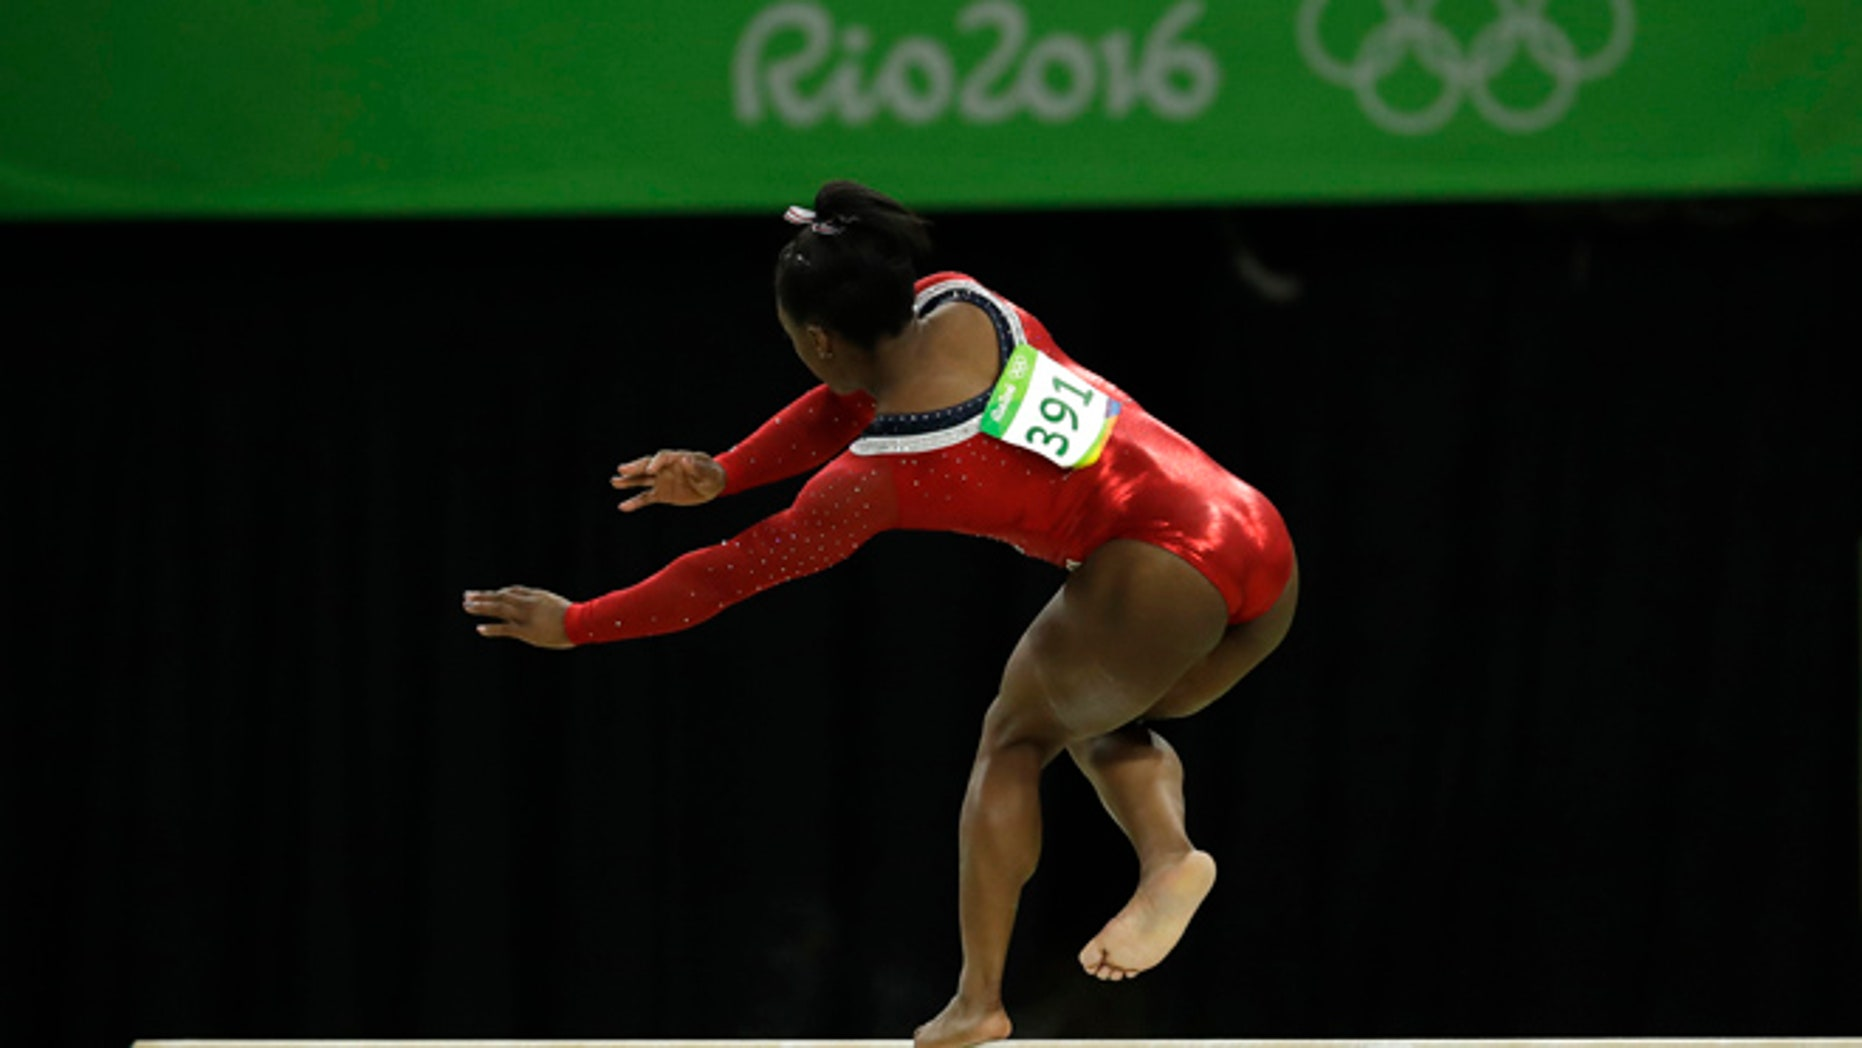 United States' Simone Biles stumbles during her performance on the balance beam during the artistic gymnastics women's apparatus final at the 2016 Summer Olympics in Rio de Janeiro, Brazil, Monday, Aug. 15, 2016.